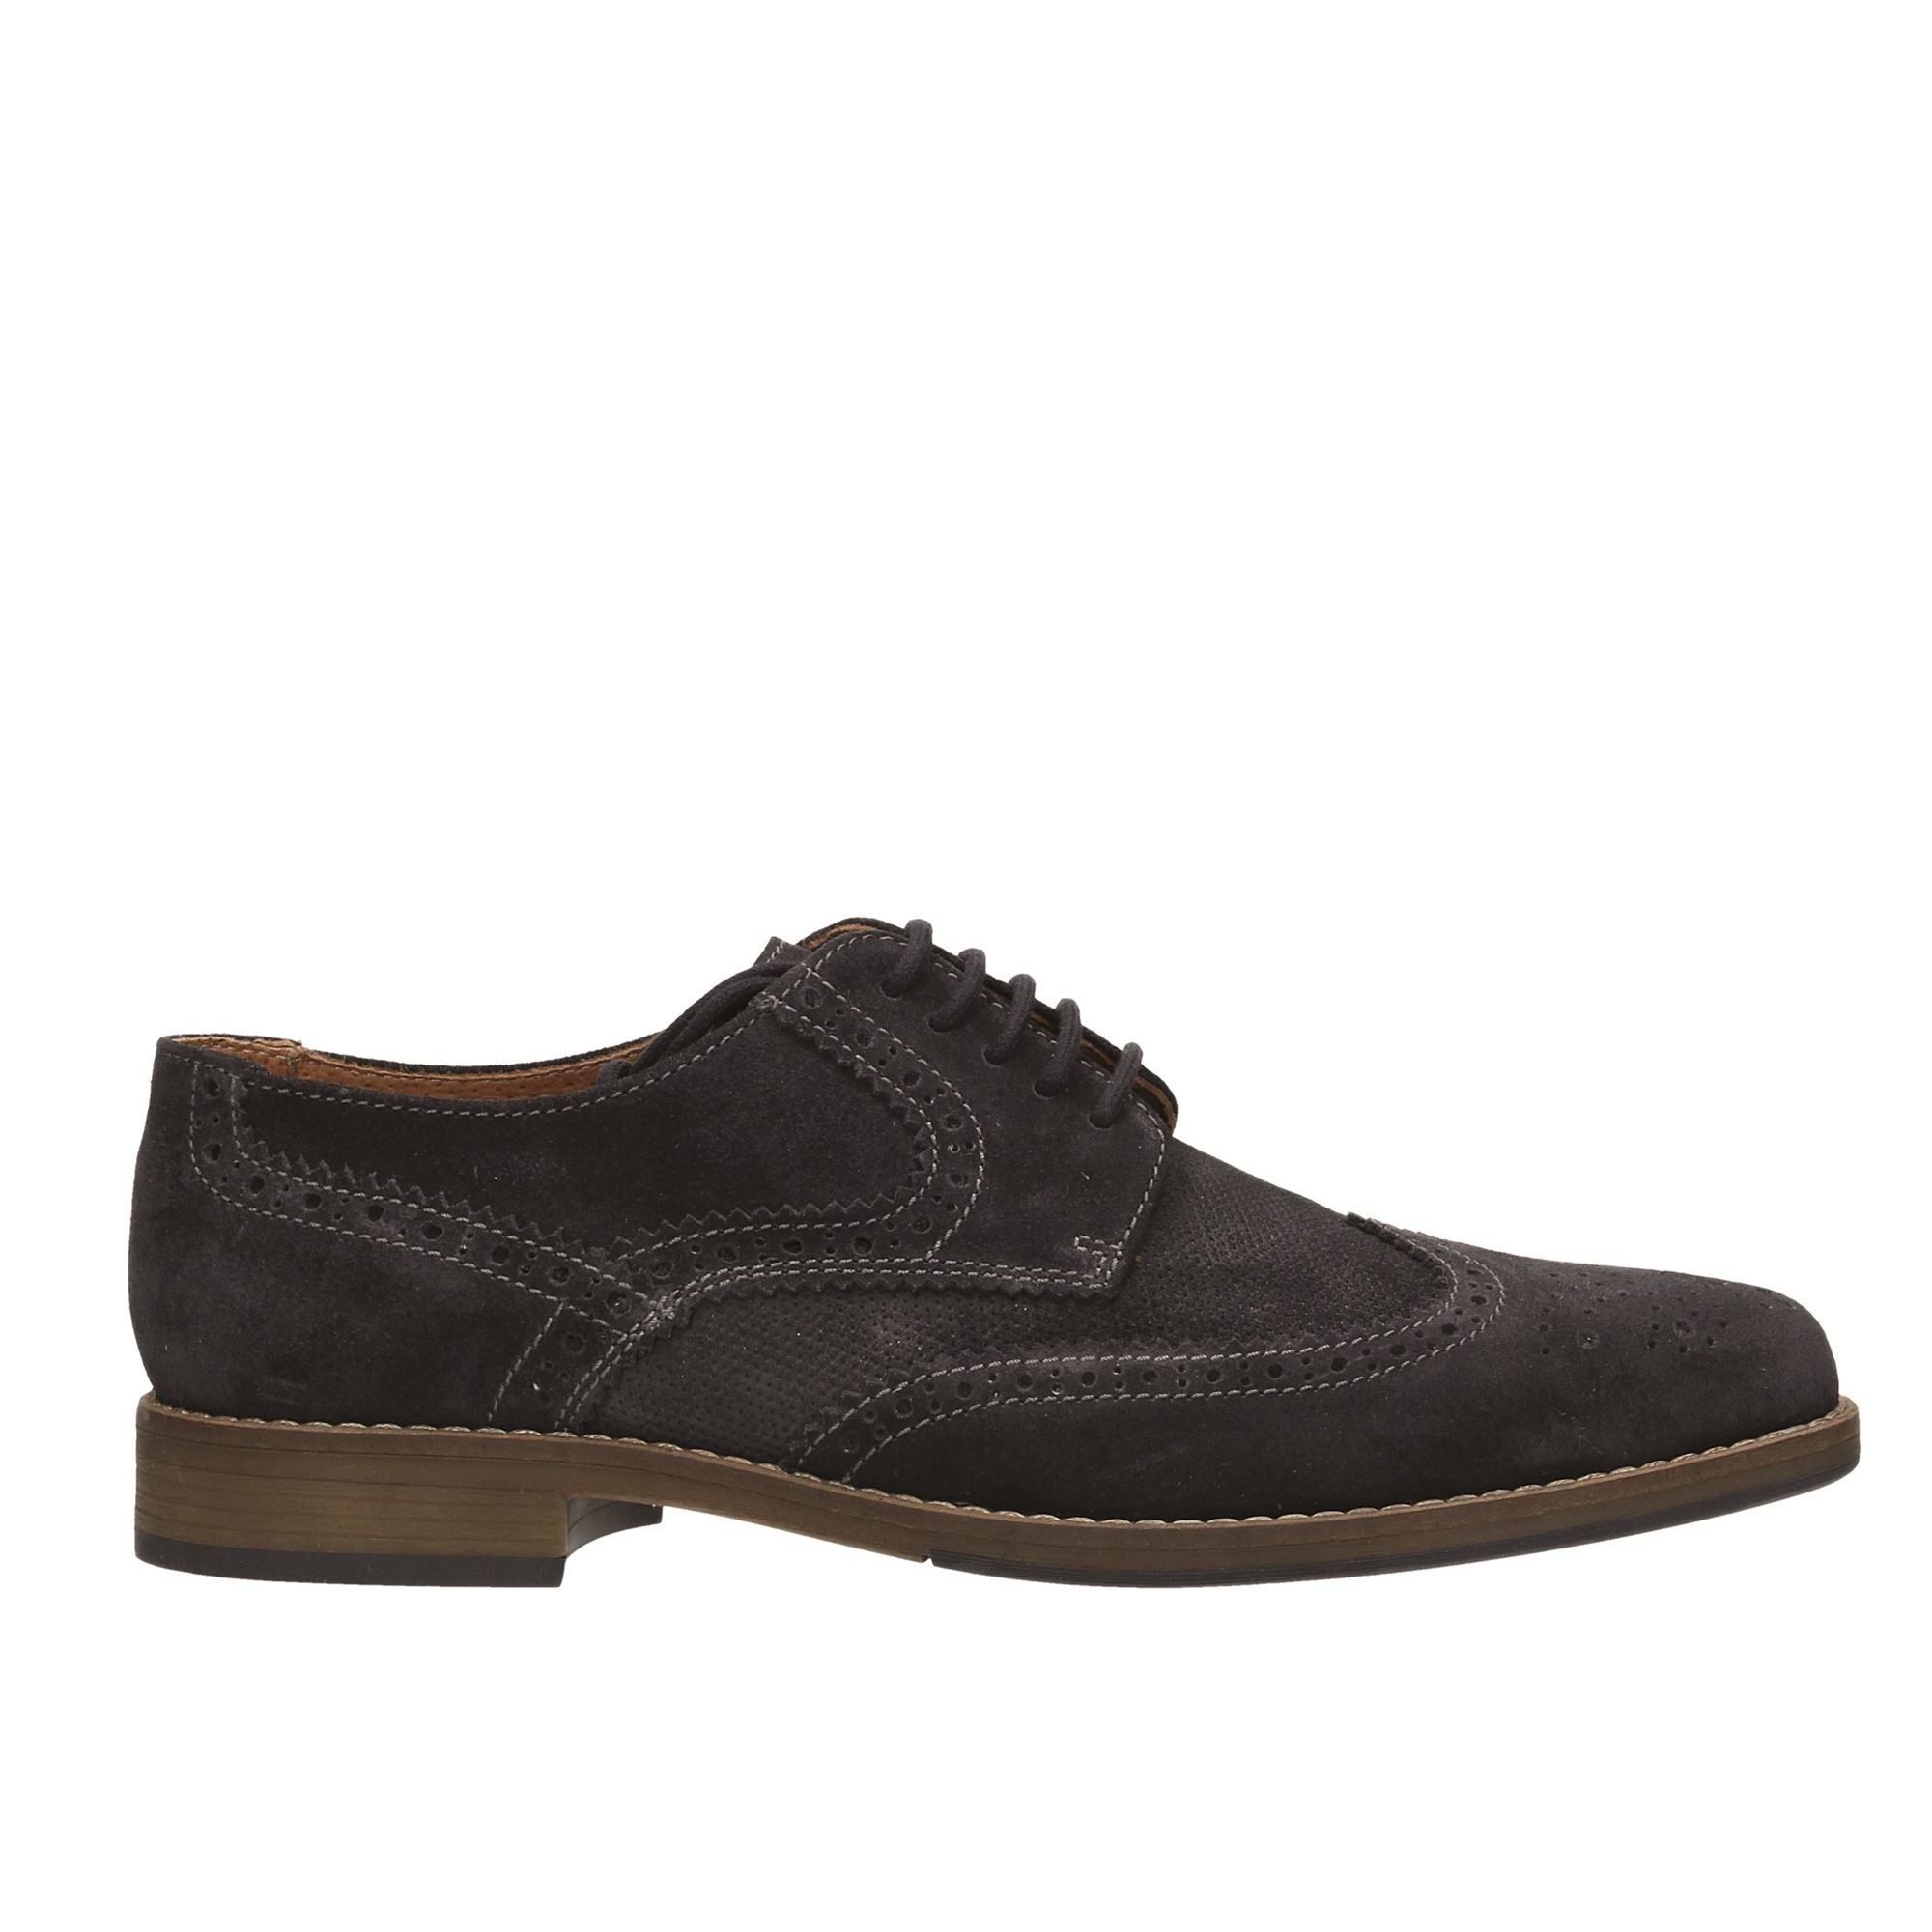 Tata Italia Shoes Man Derby Navy MS-369R09